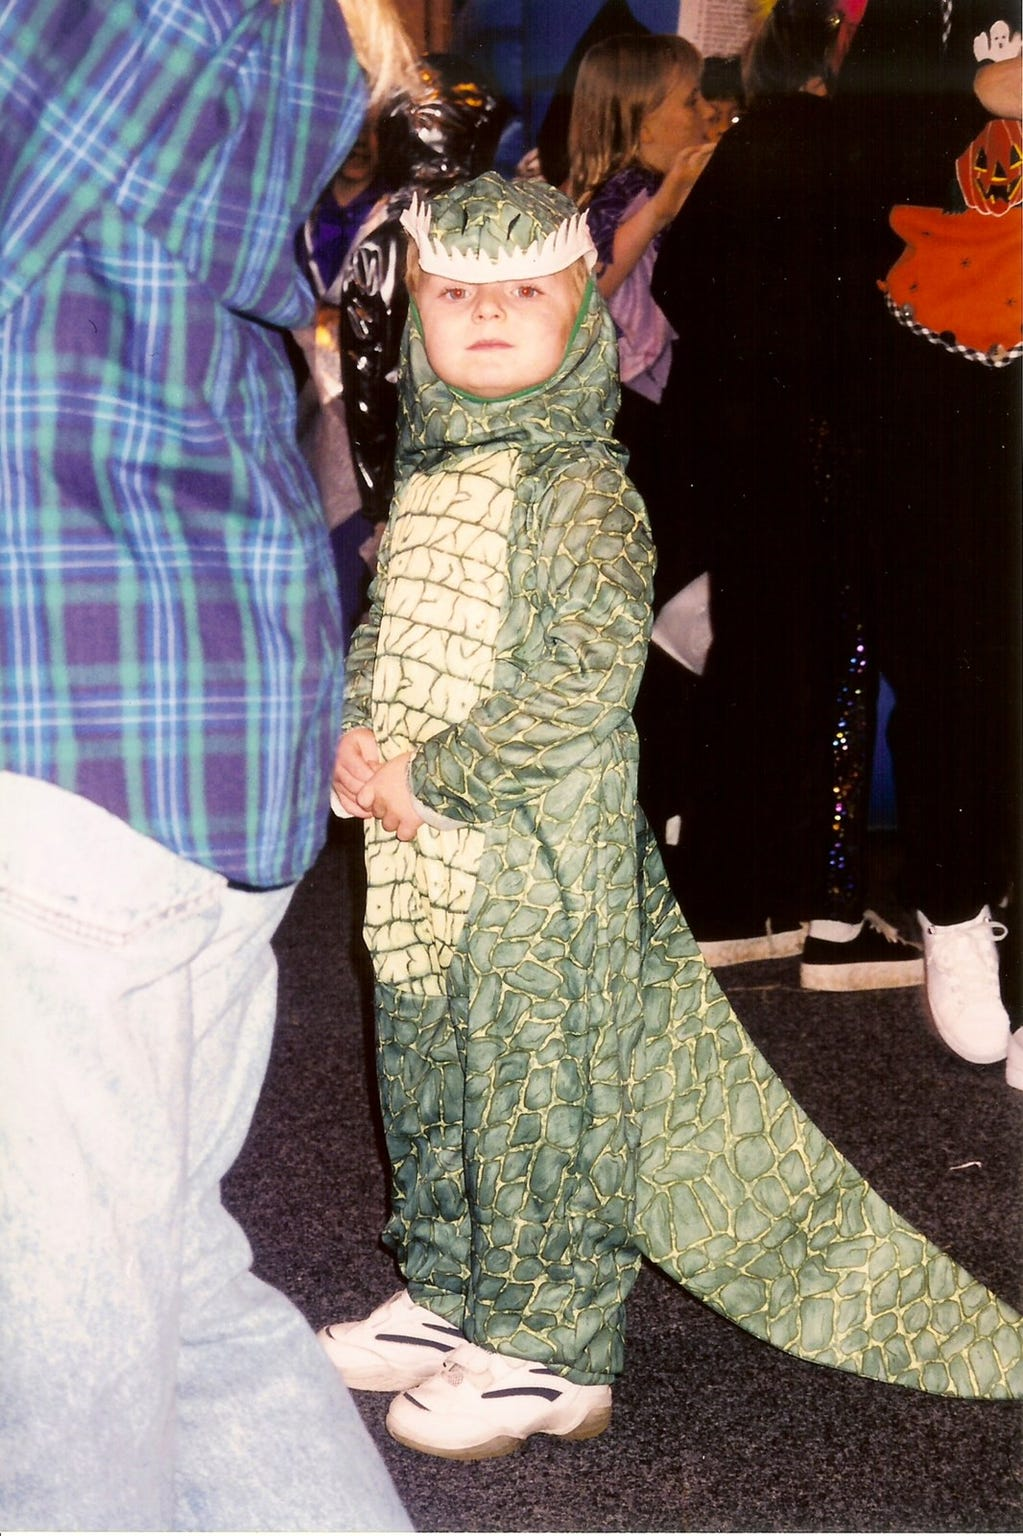 Purdue fifth-year senior forward Evan Boudreaux adopted his father's fascination with dinosaurs at a young age. He wore this costume for Halloween around age 4.